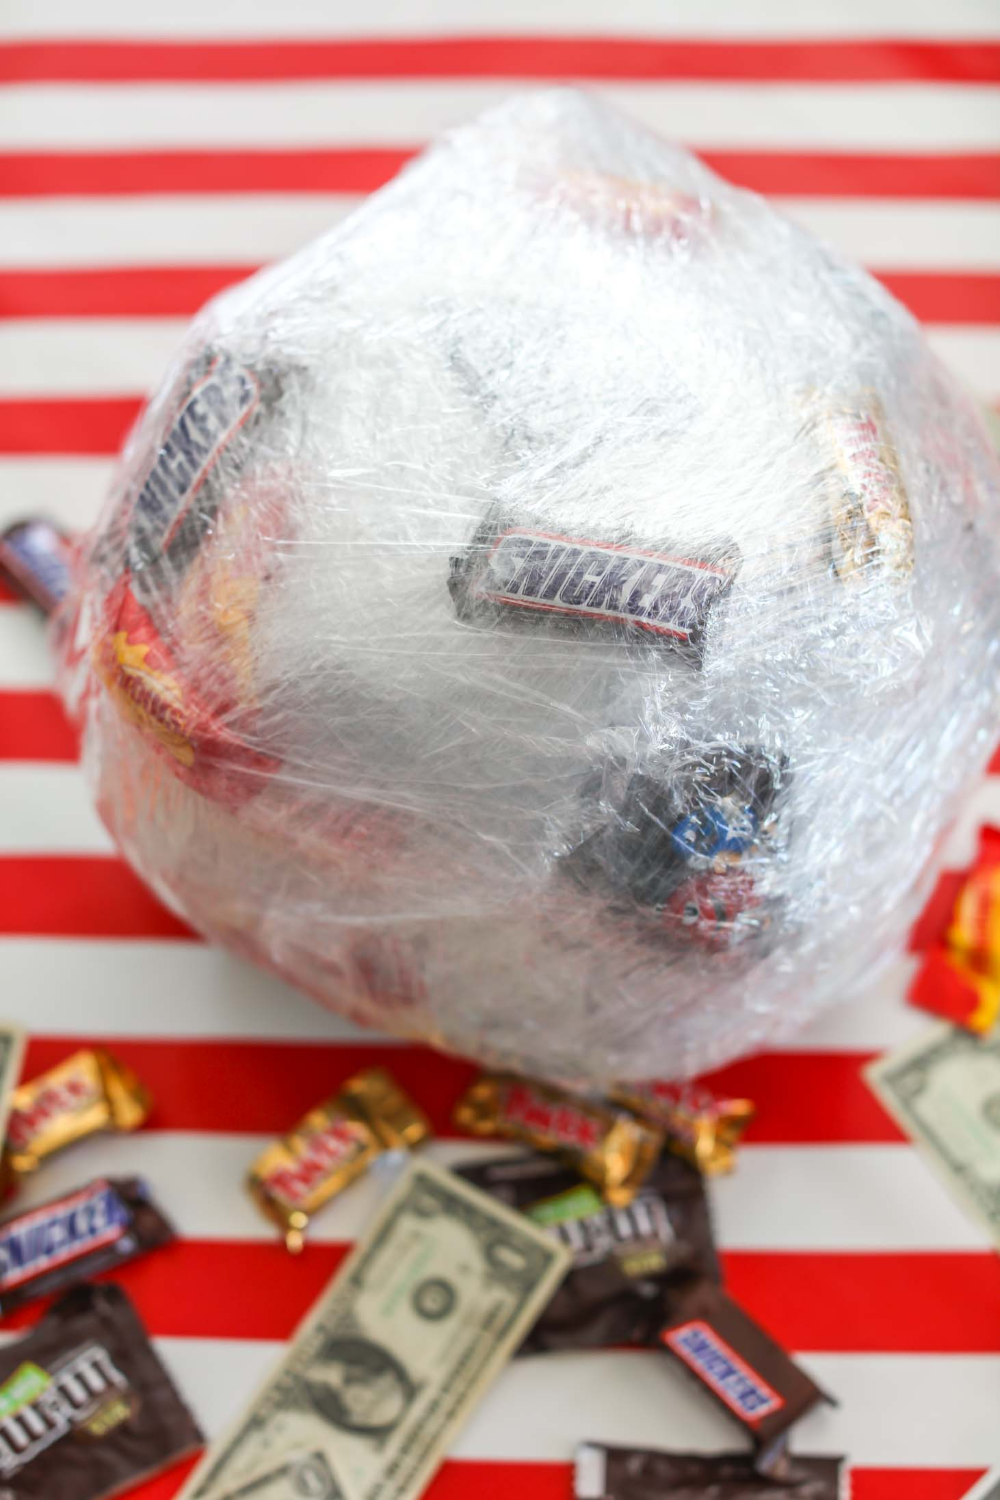 The Saran Wrap Ball Game - the most fun and entertaining holiday game out there. Guests get to unwrap a saran wrap ball filled with prizes and get to keep what comes out on their turn!